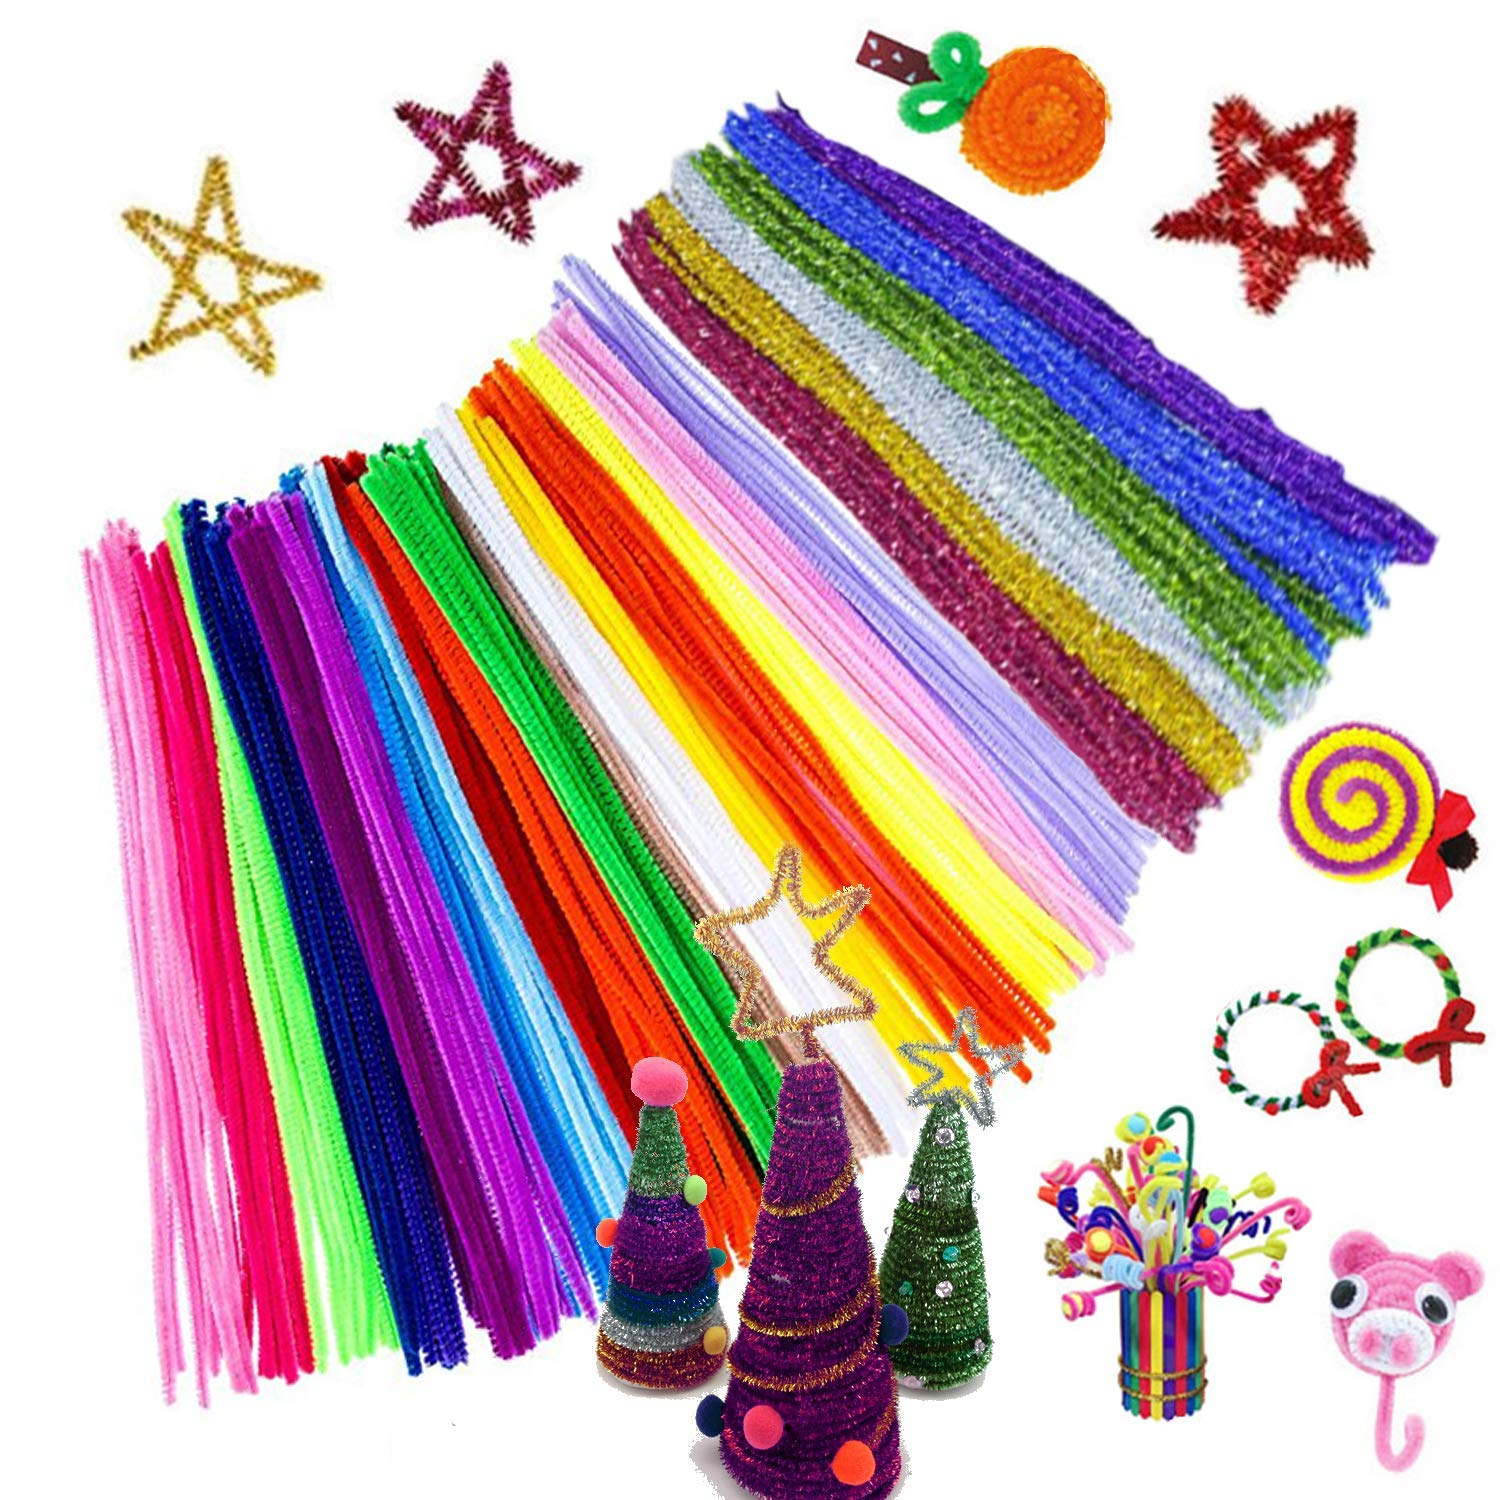 Pipe Cleaners, 600 Pieces Assorted Colors Chenille Stem Set for DIY Art Craft 30 Colors Available (0.24x 12) Dshengoo